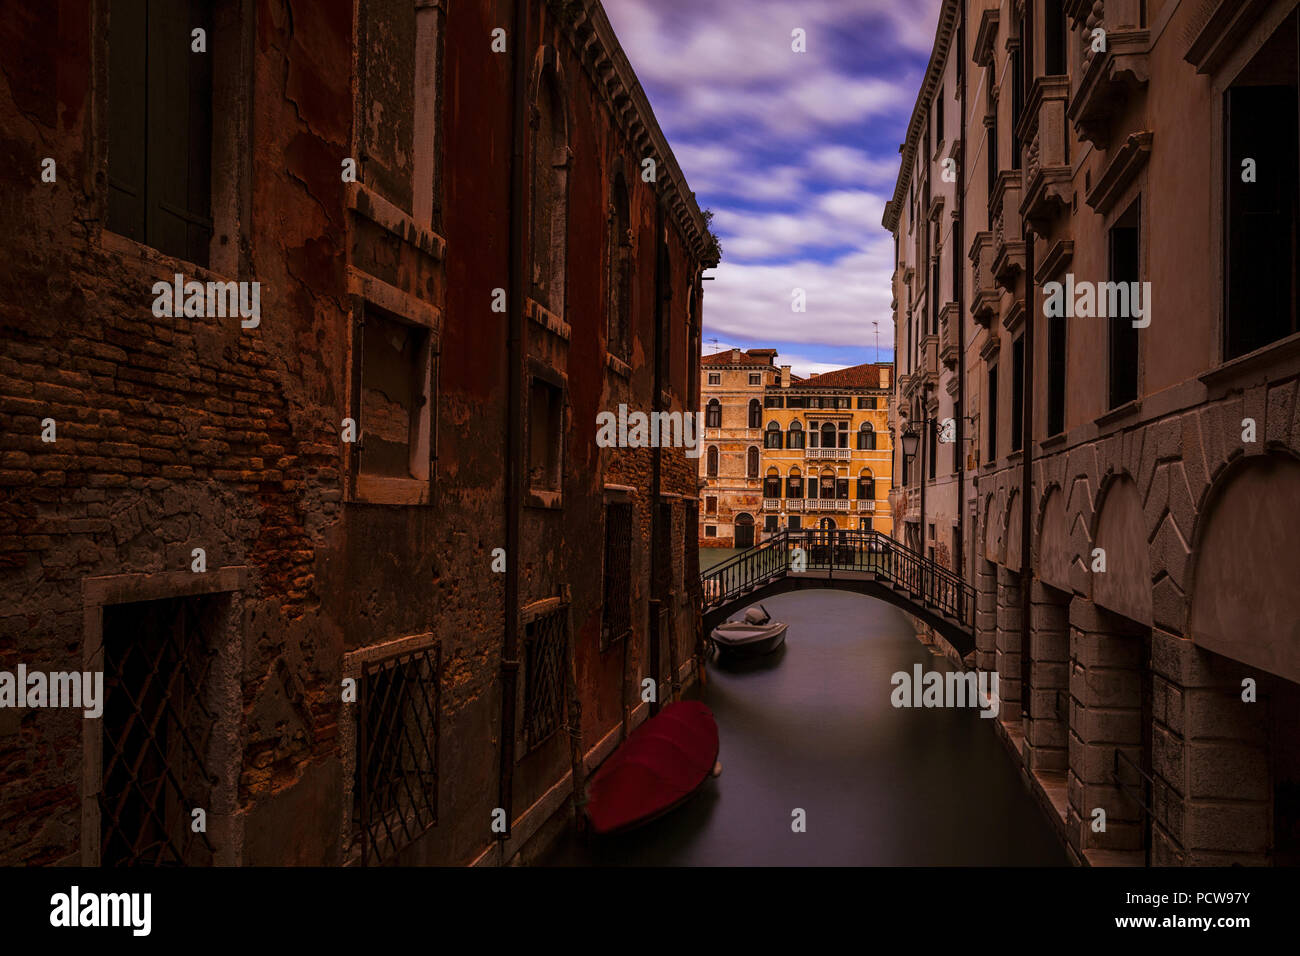 A narrow side canal in Venice, Italy - Stock Image